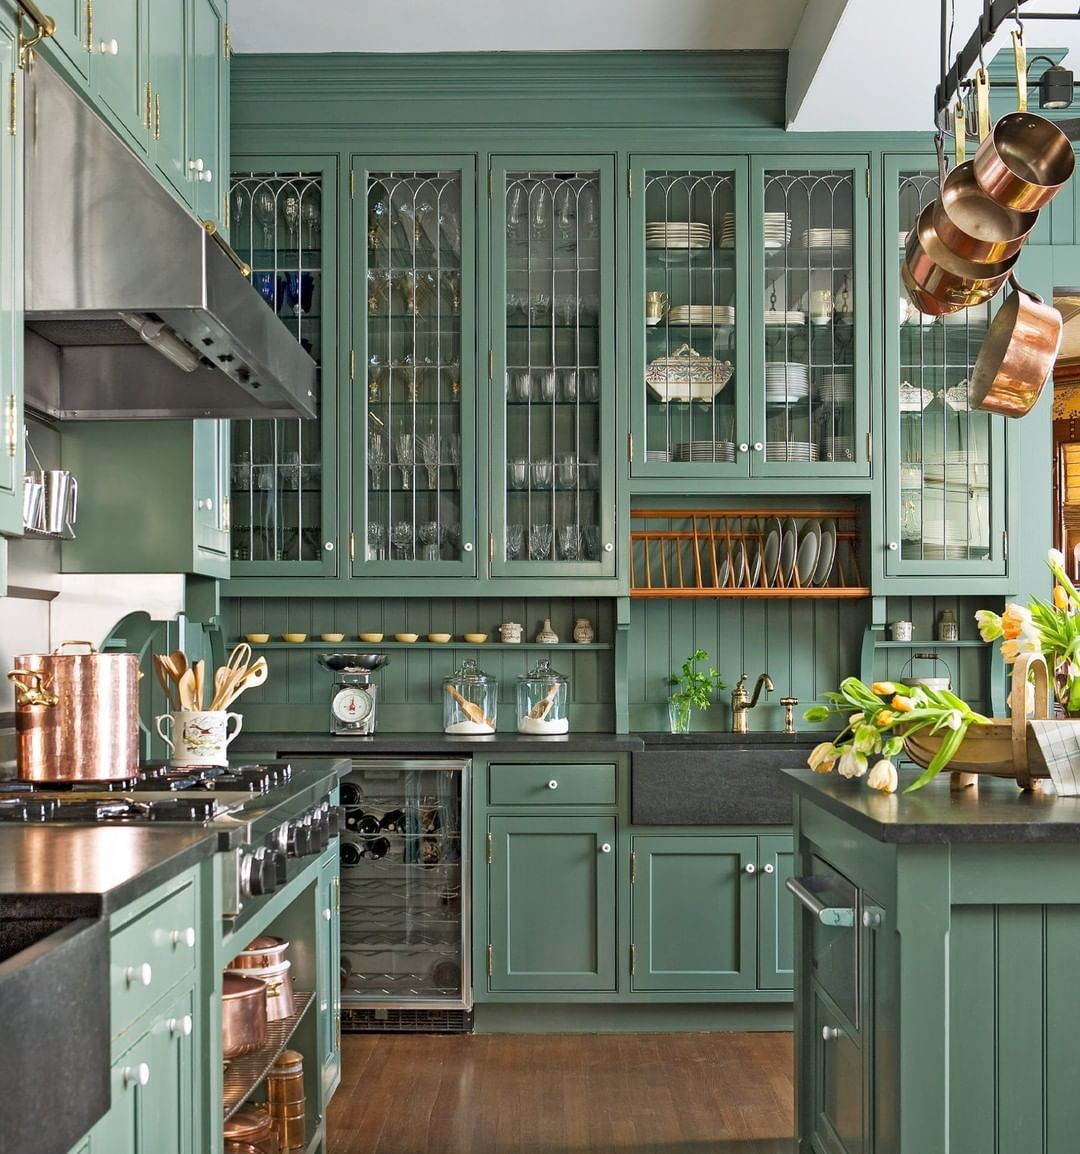 """Better Homes & Gardens on Instagram """"A kitchen renovation doesn't ..."""